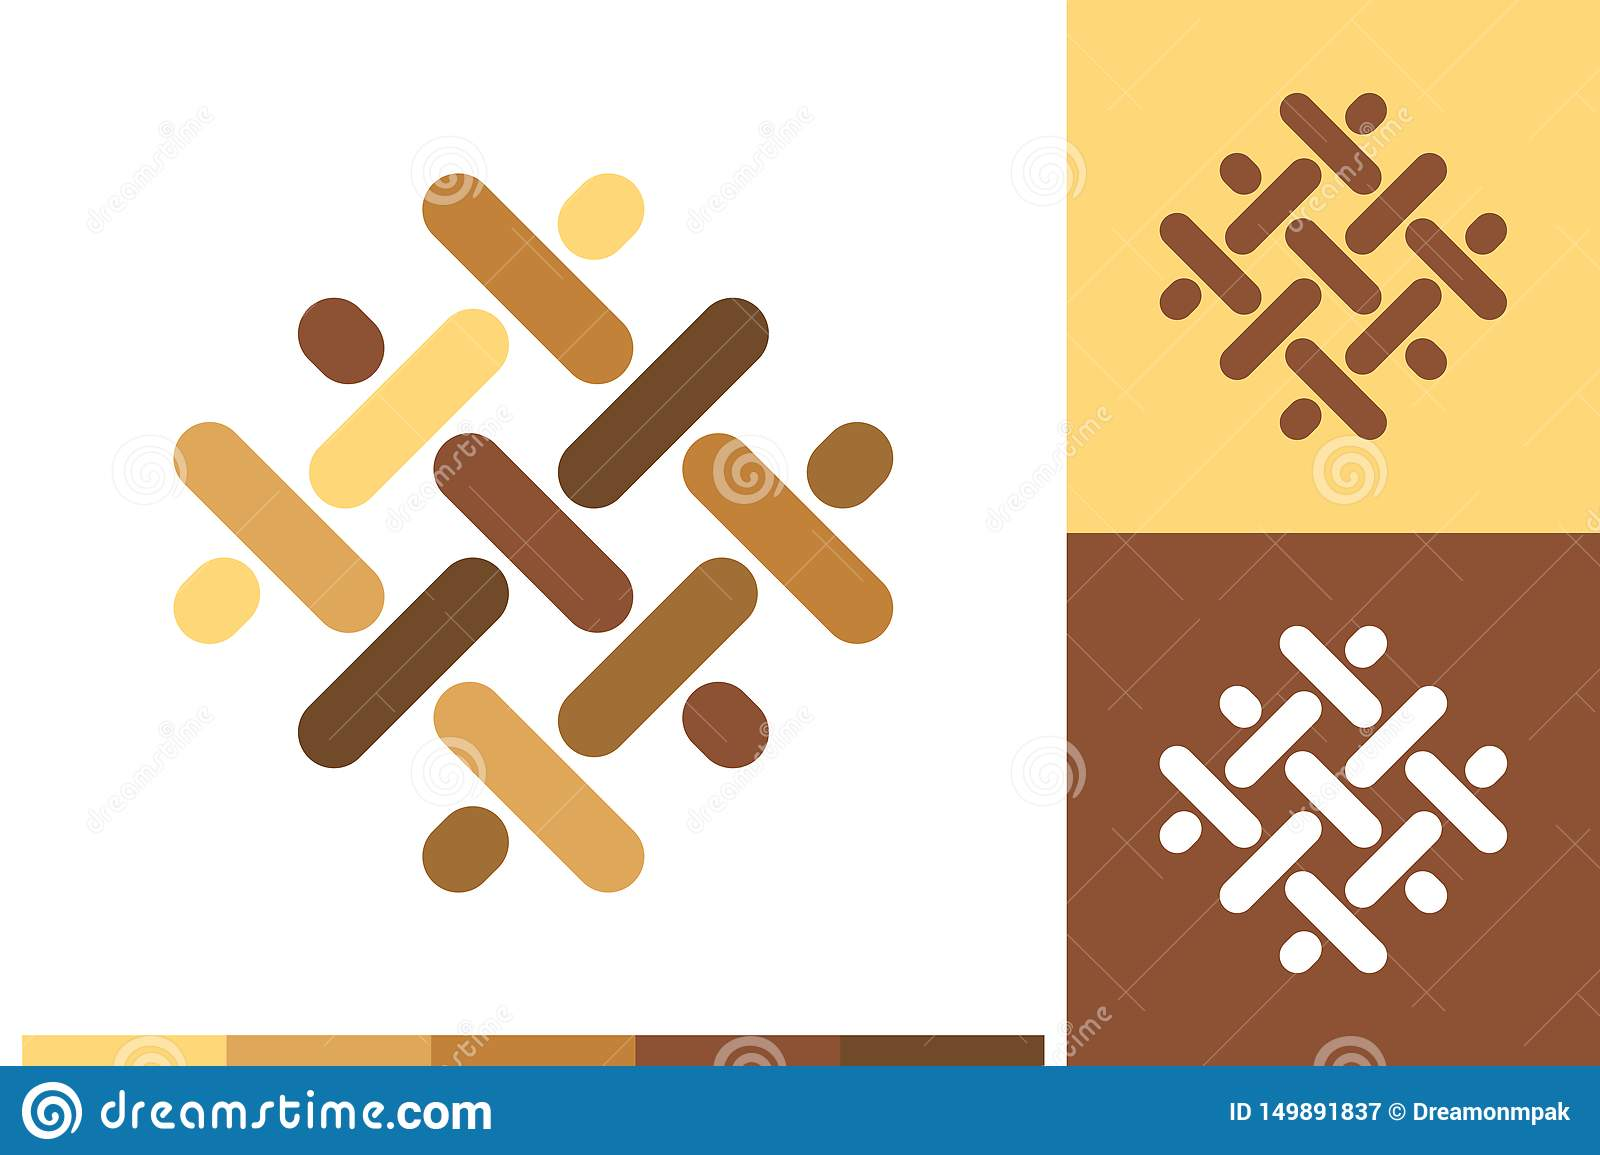 Vector Logo, Icon or Sign with Flooring, Parquet, Laminate, Lumber, Carpentry, Hardwood Elements in Natural Colors for Business, C